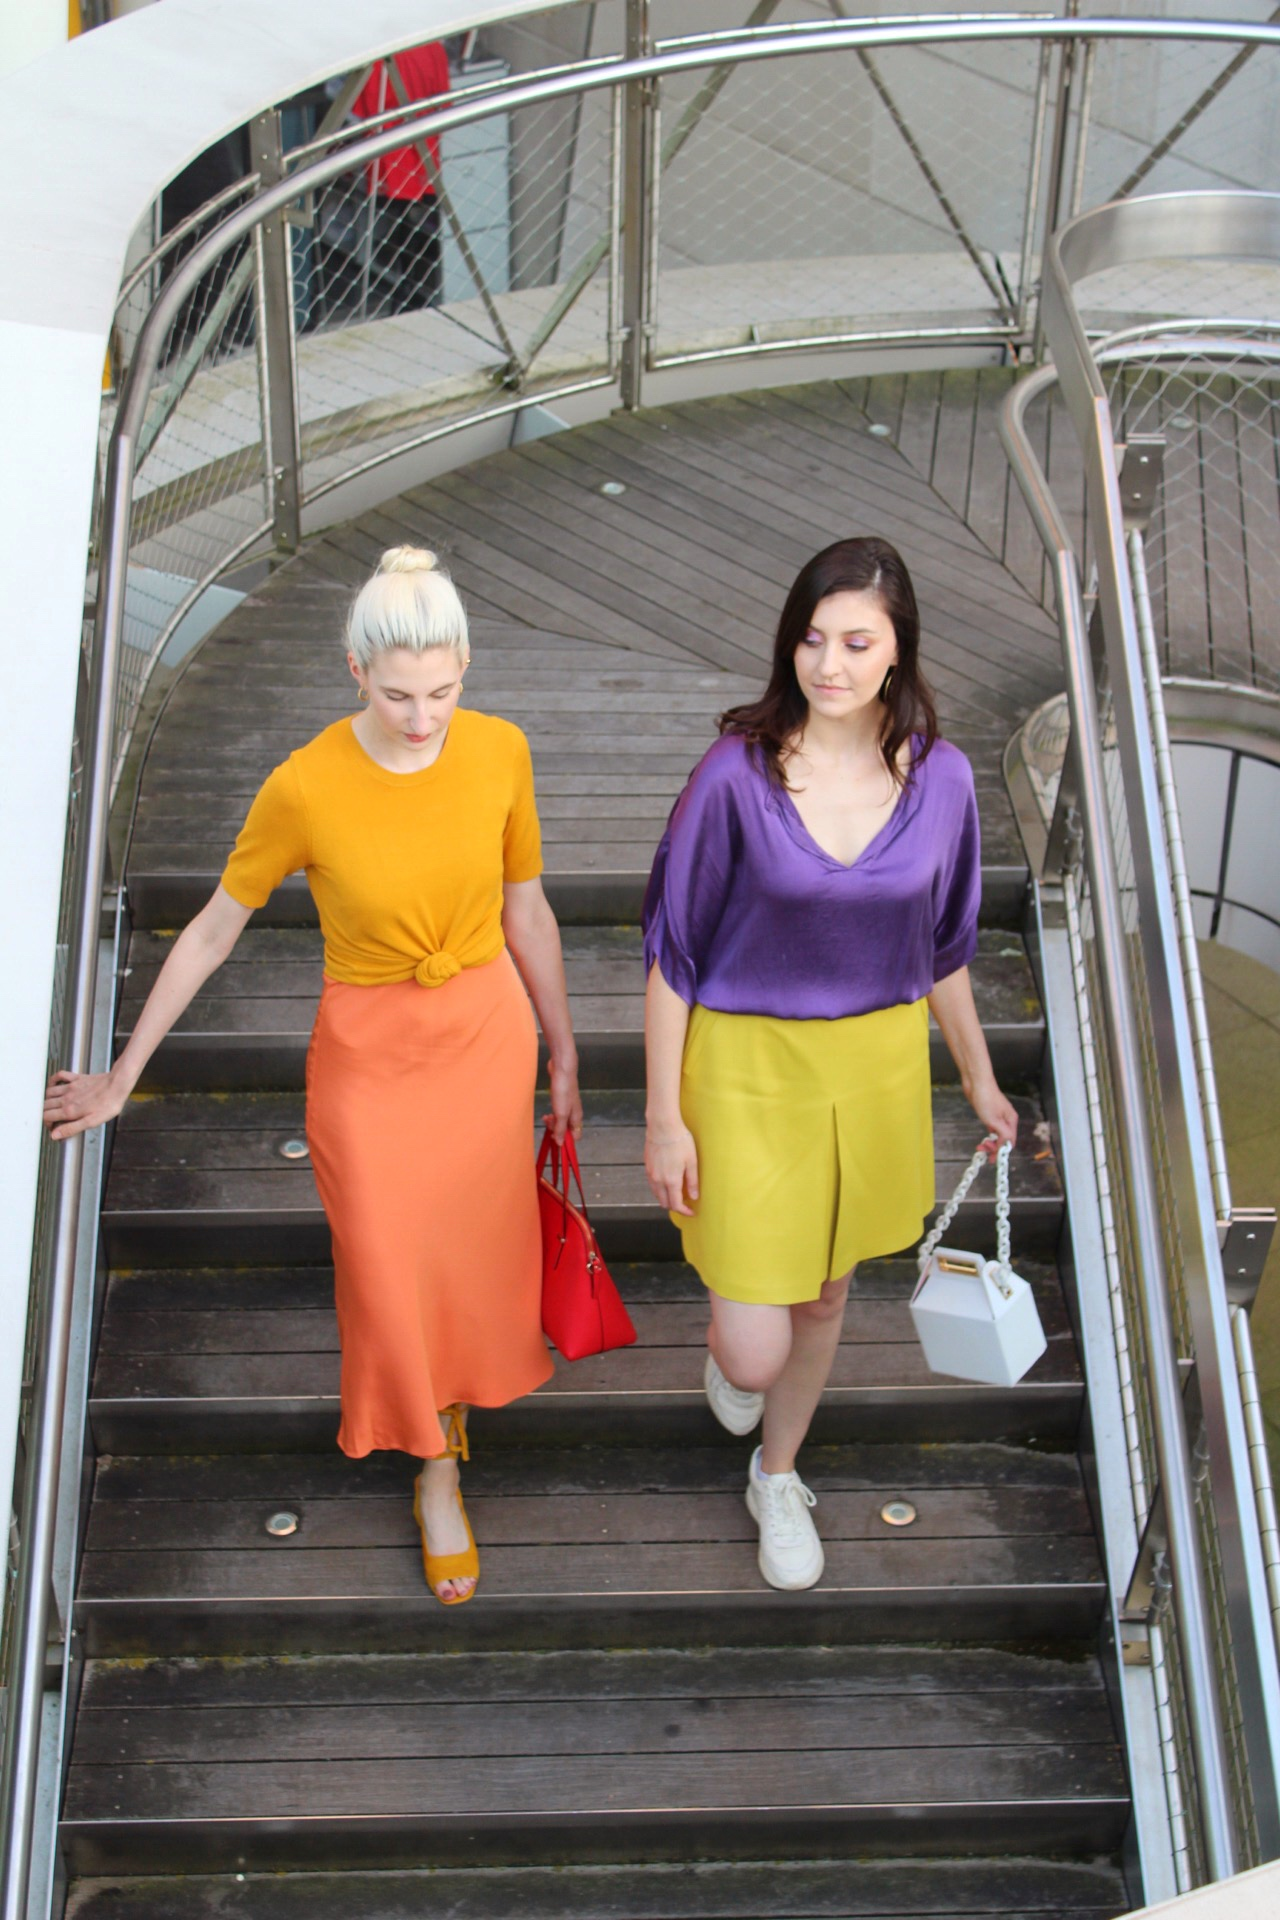 Her style: colorblocking with sophia kountakis, fashion interview with JustCallMeSophia by Audra Koch Southern New Yorker